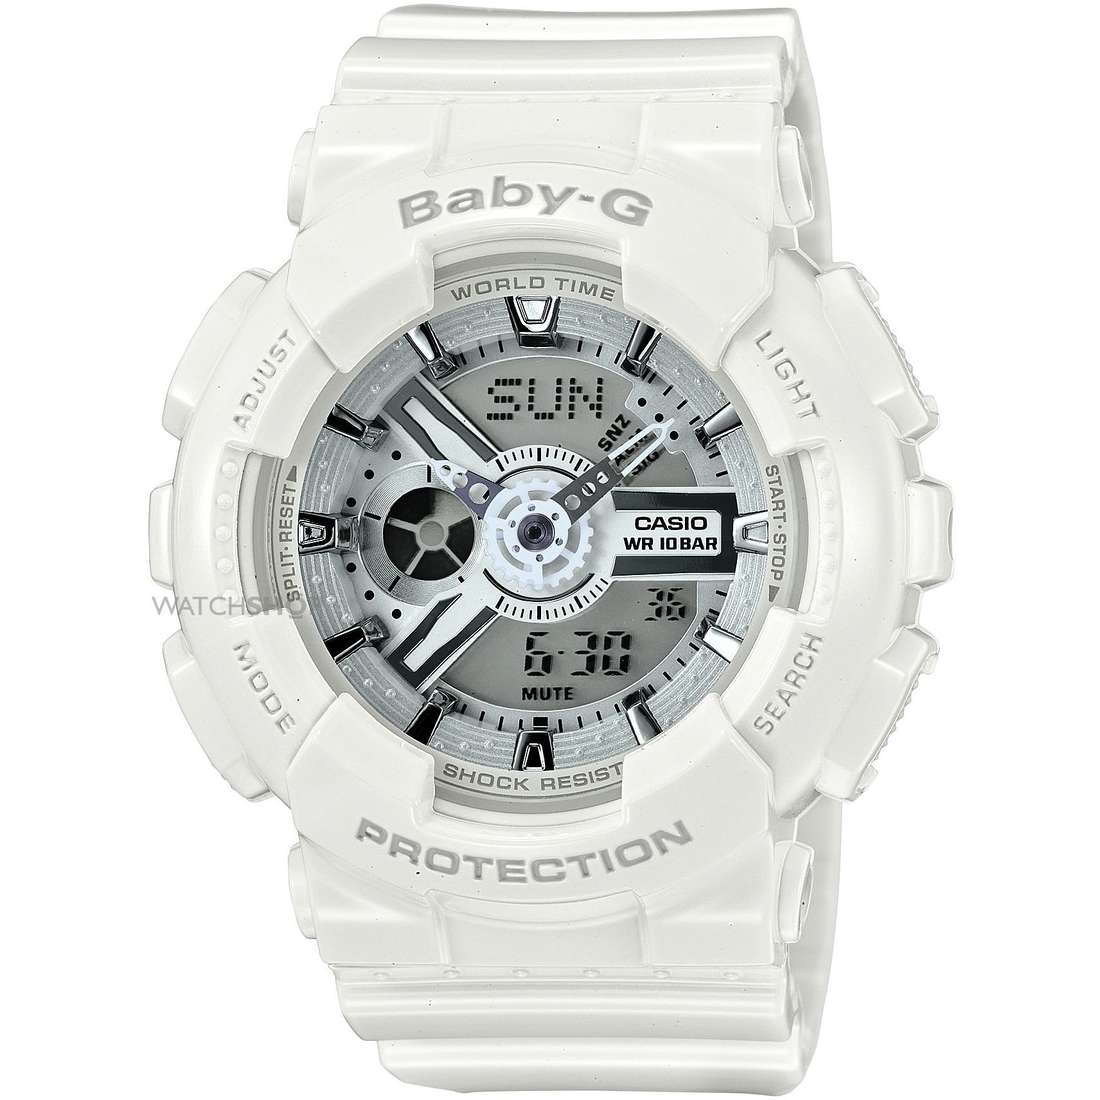 watch multifunction unisex Casio BABY-G BA-110-7A3ER